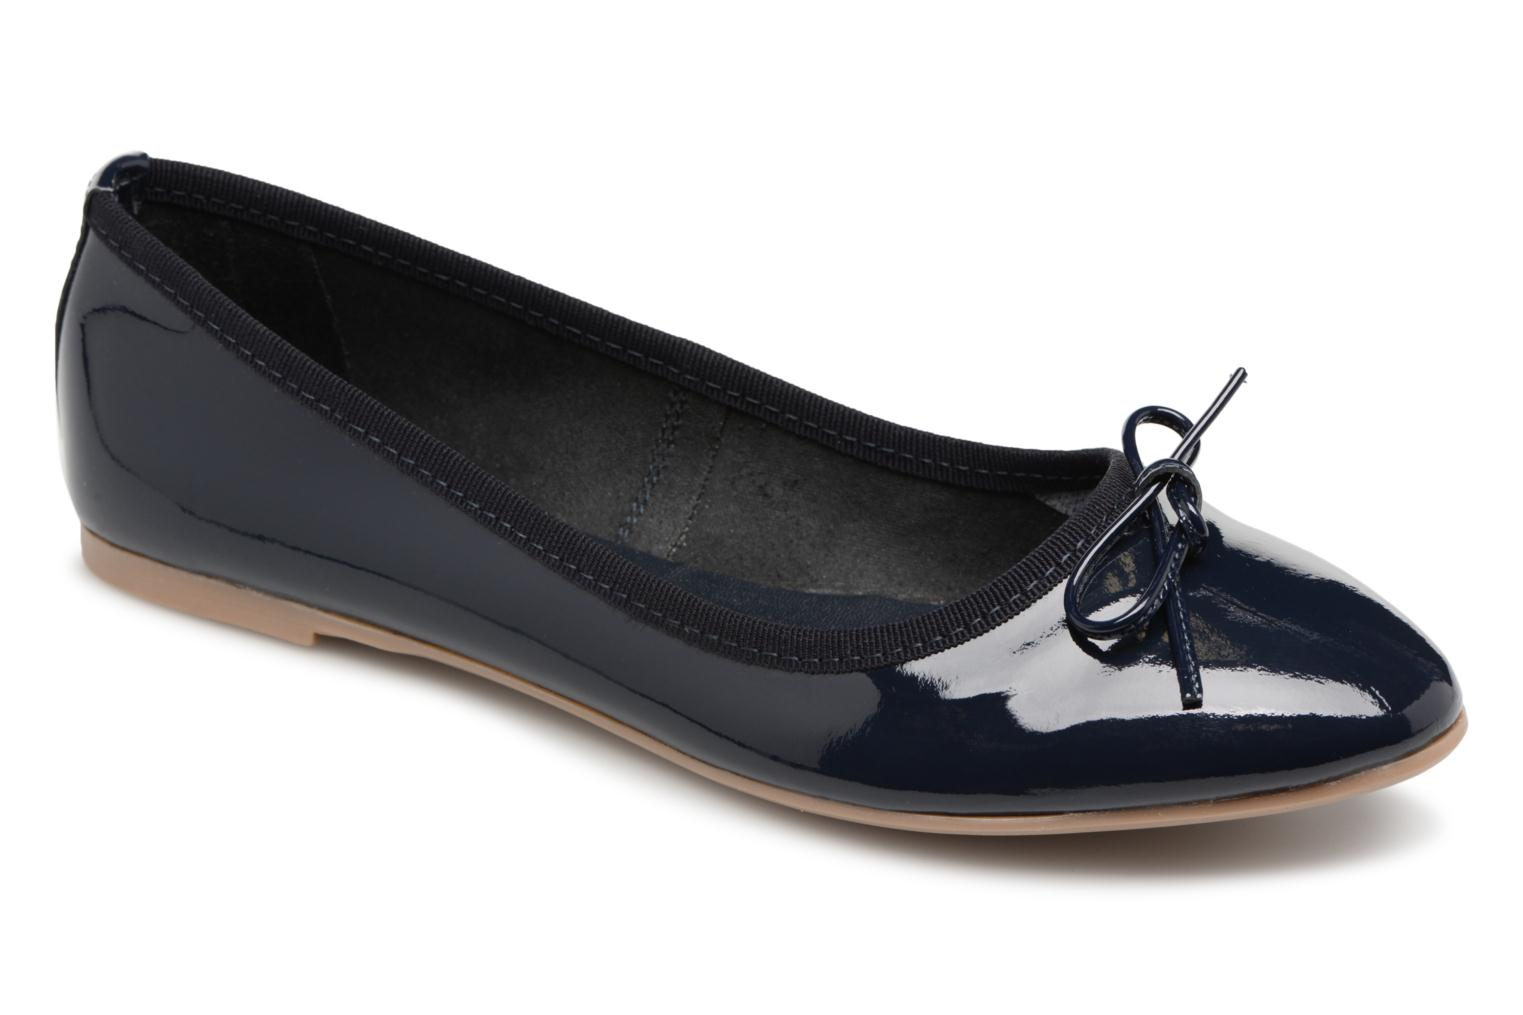 Georgia Rose - Damen - Laia - Ballerinas - blau